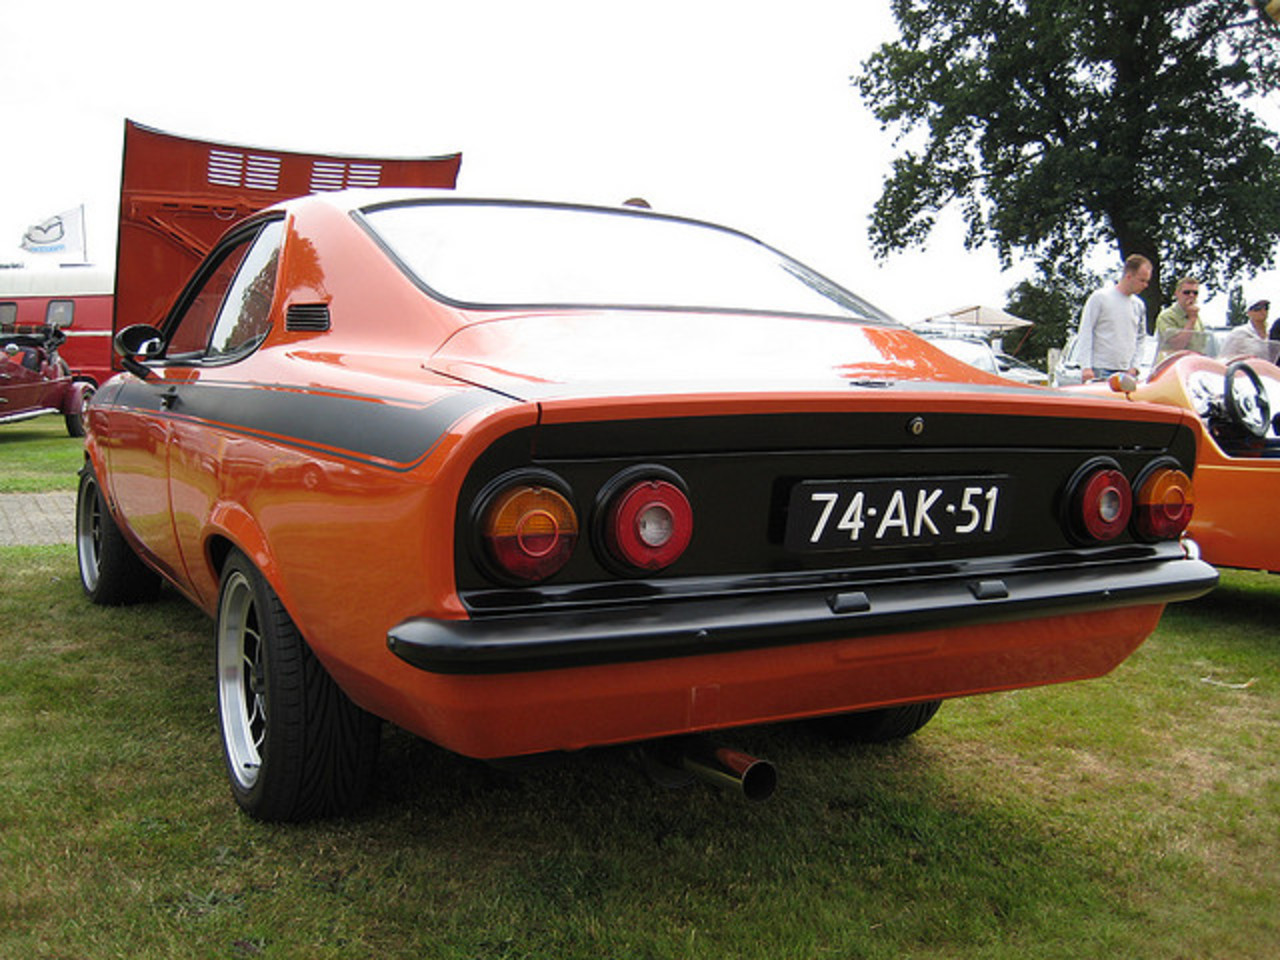 Opel Manta GT/E 1973 | Flickr - Photo Sharing!